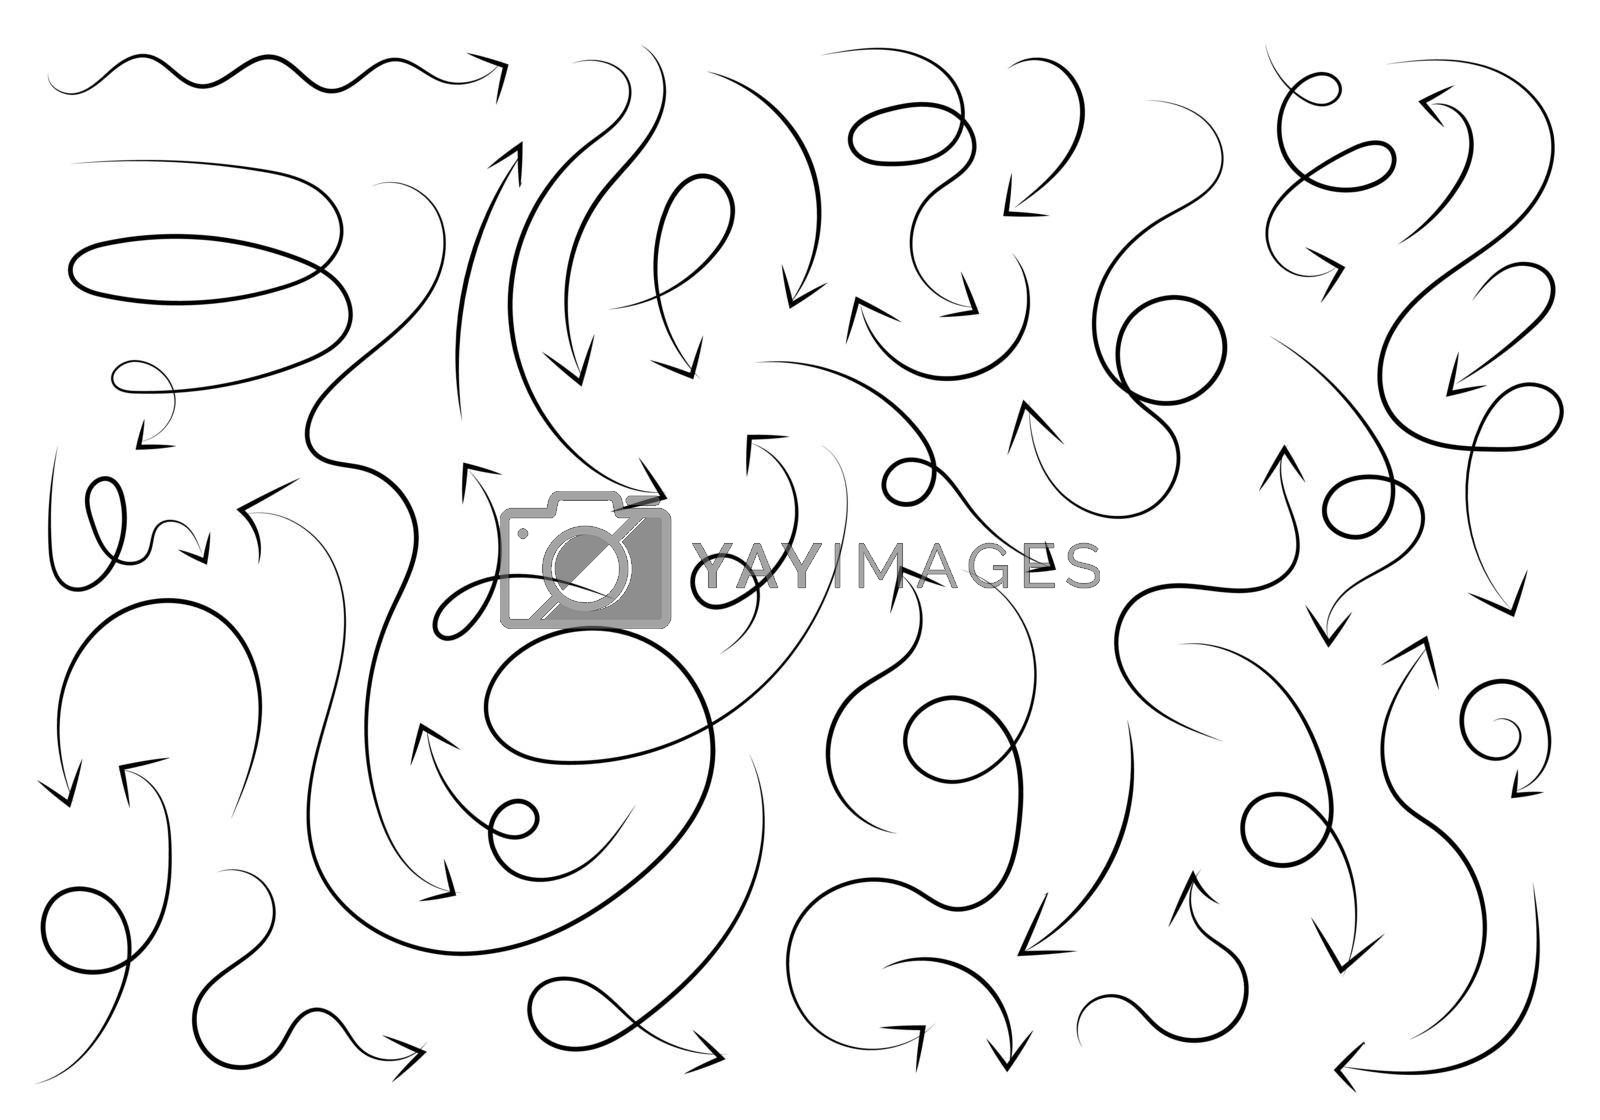 Set of hand drawn black brush arrows isolated on white background. Vector illustration